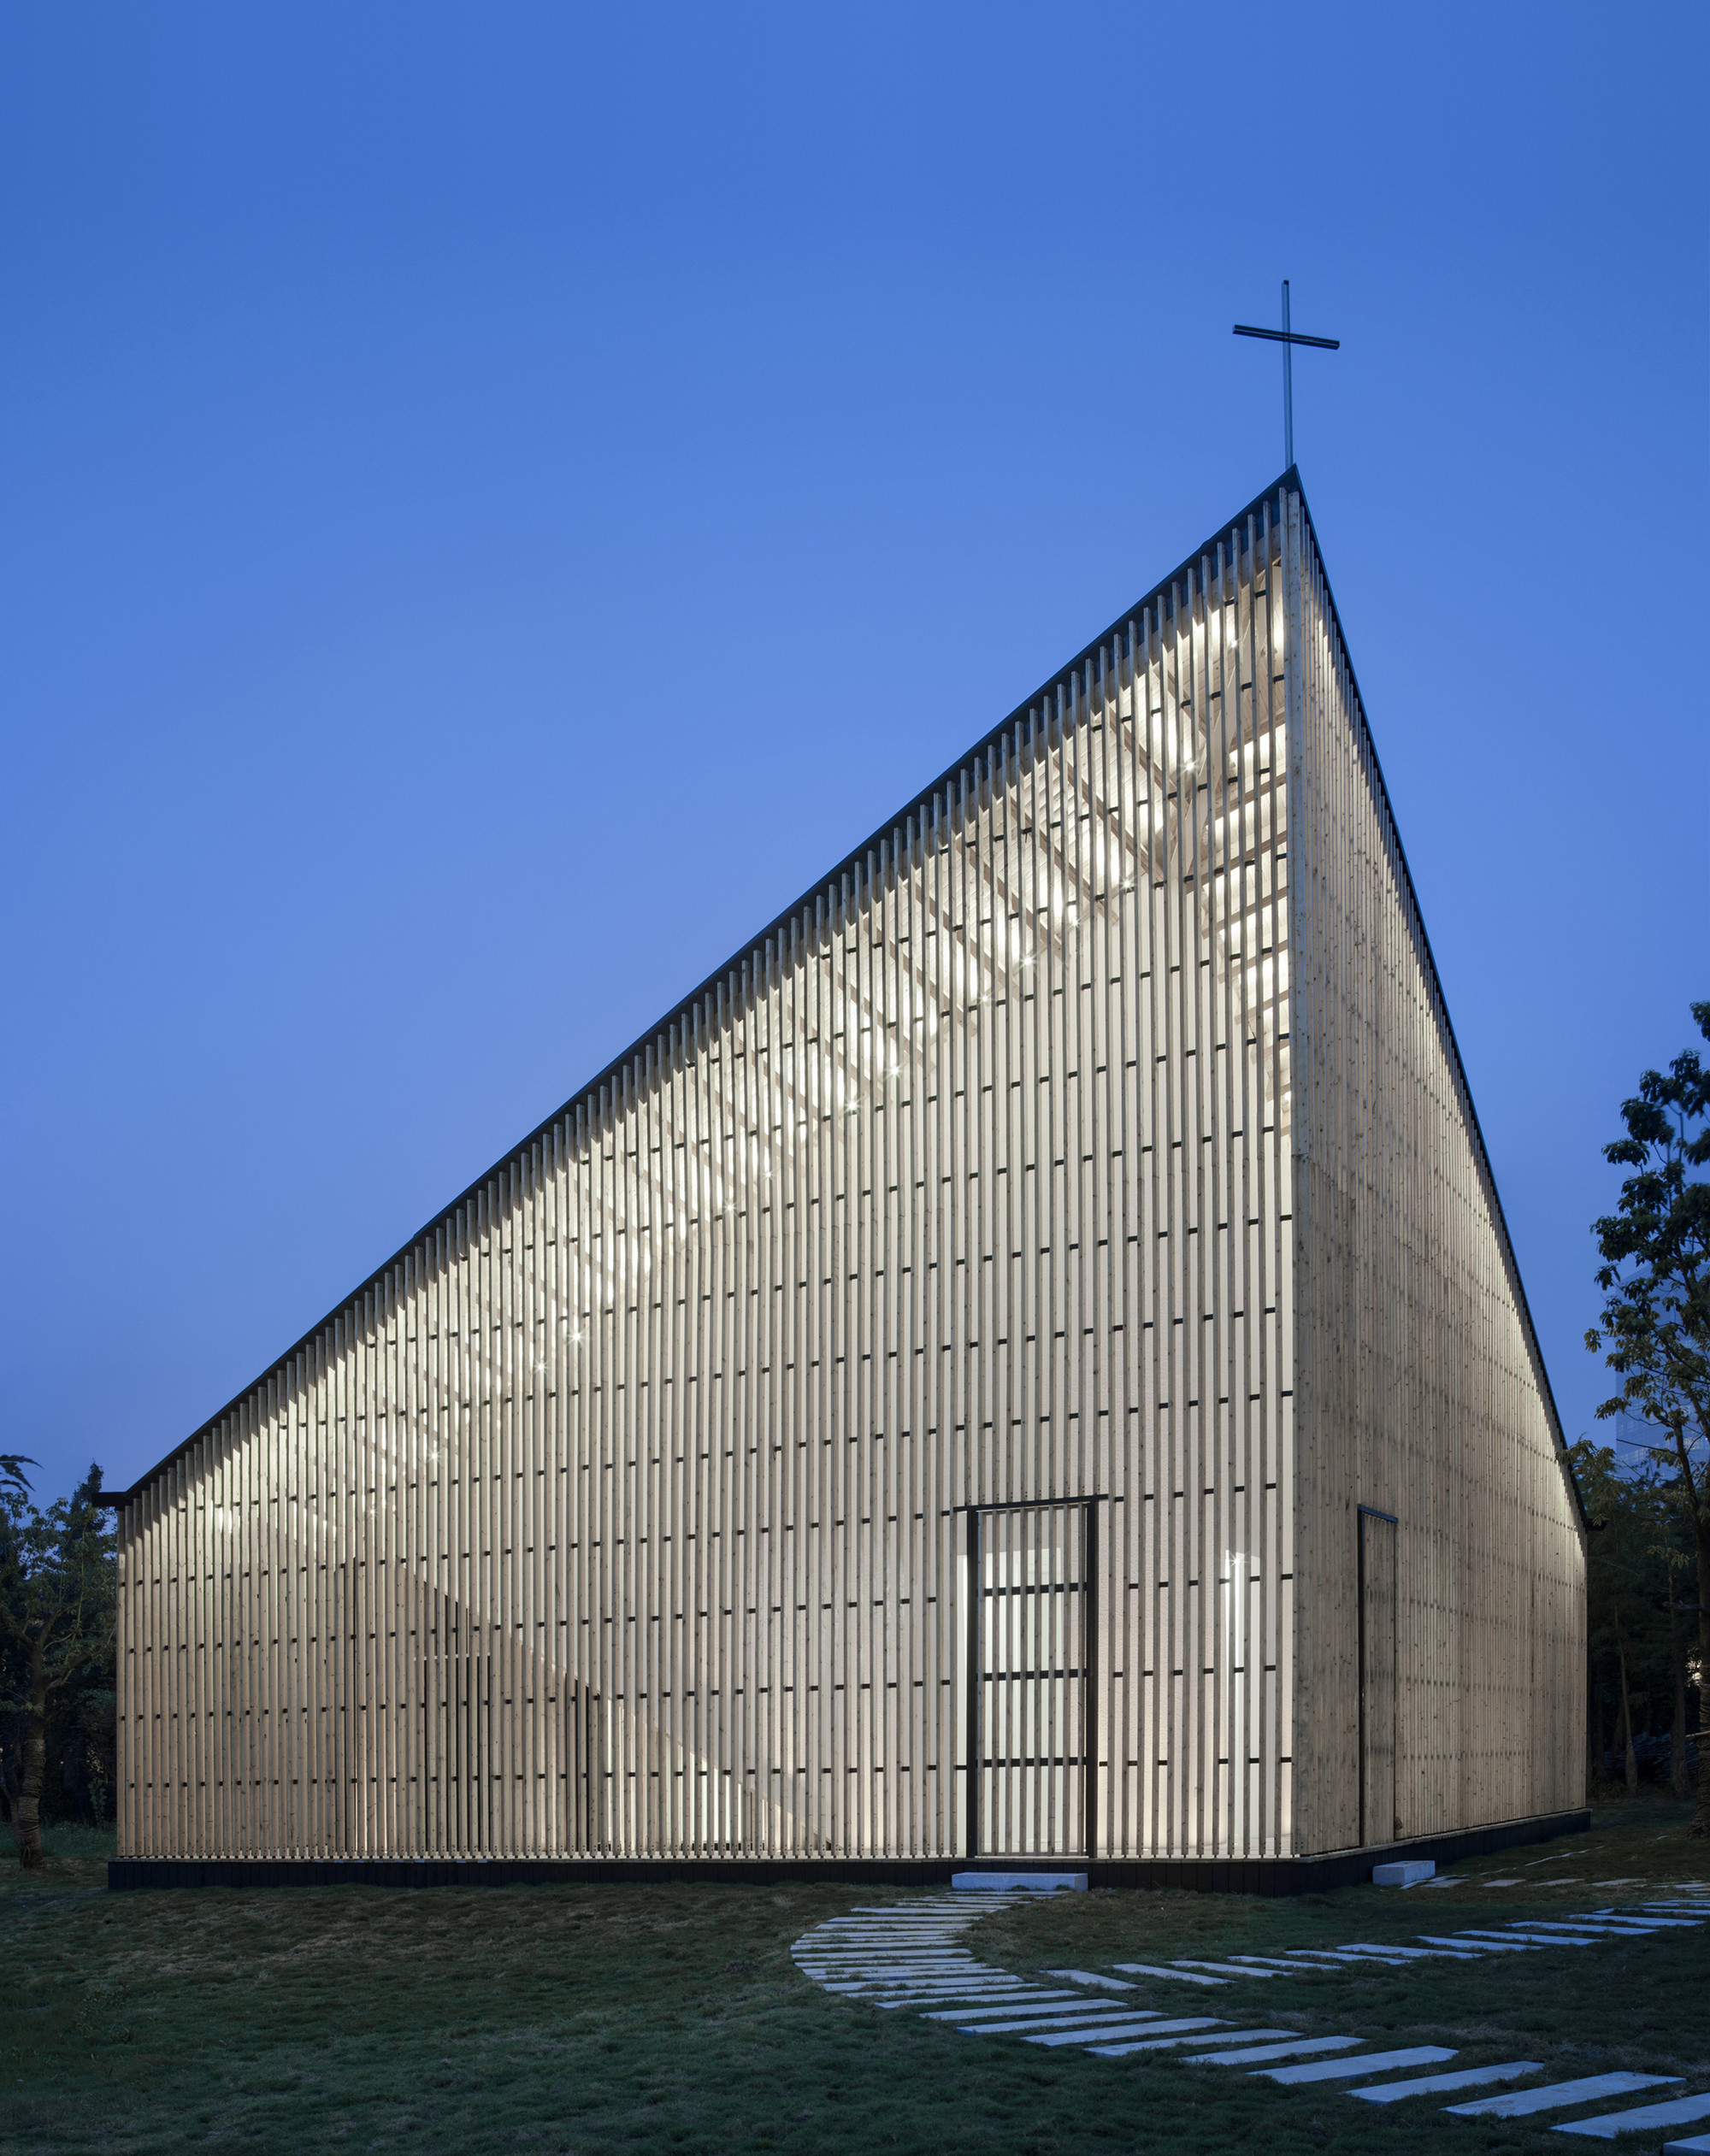 Architecture Exterior: A Wood And Steel Structured Chapel With A Gentle Exterior